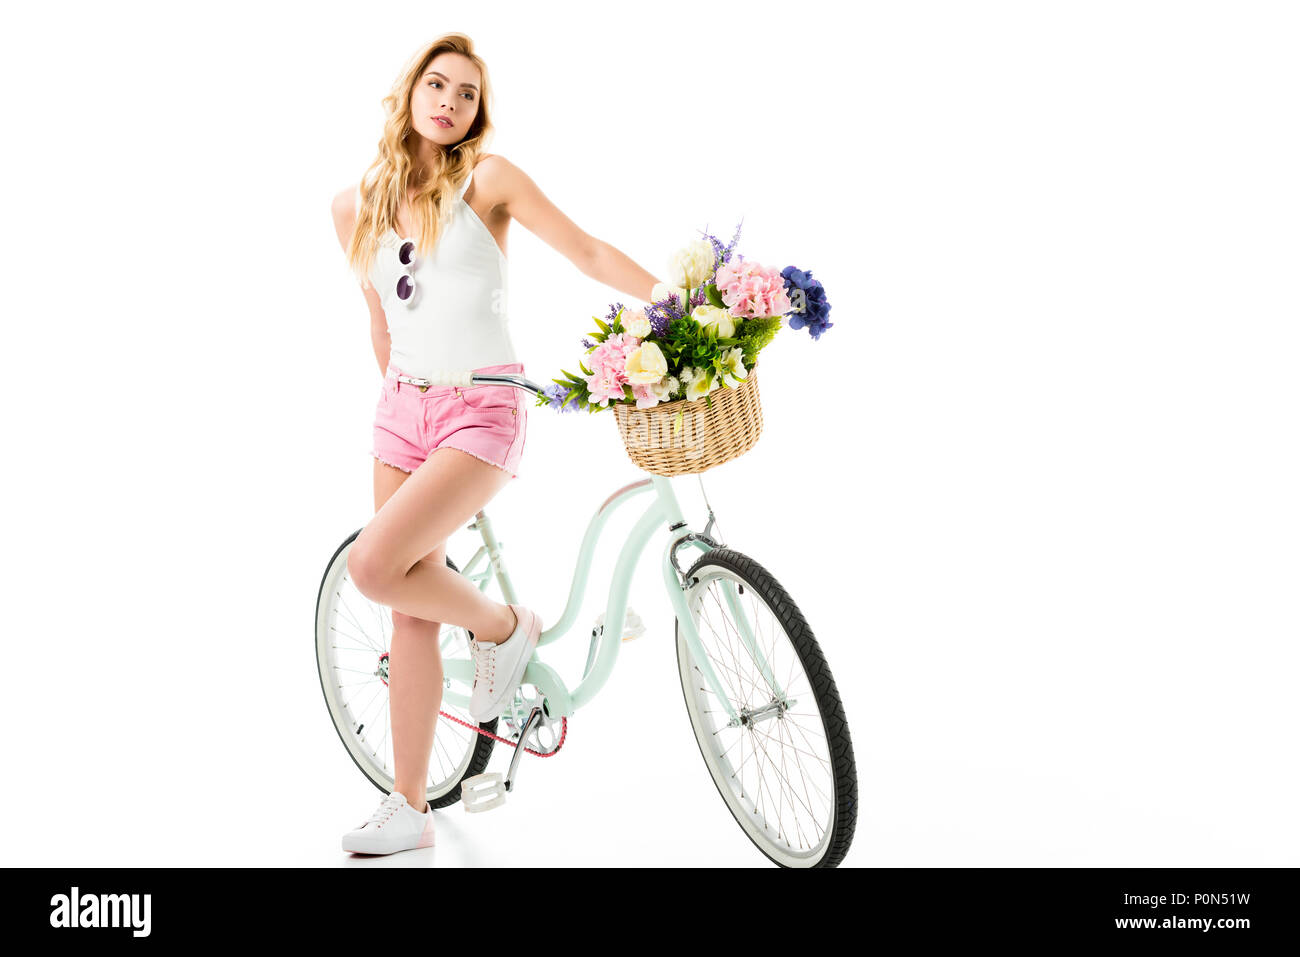 Young girl standing by cruiser bicycle with flowers in basket isolated on white - Stock Image